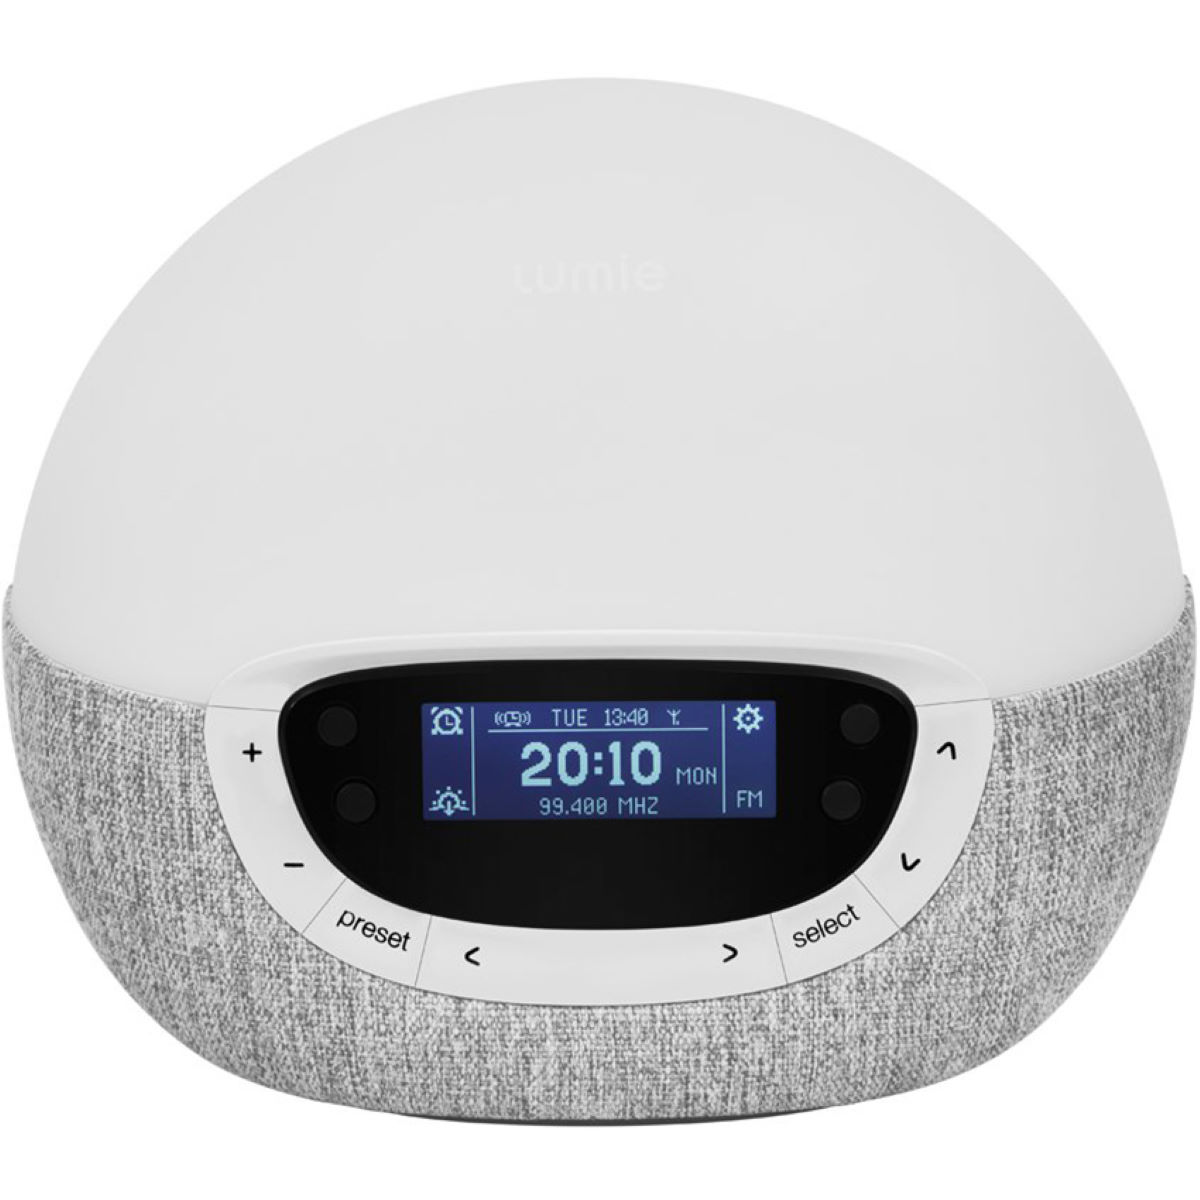 Lumie Lumie Bodyclock Shine 300 Wake-up Light Alarm   Alarm Clocks